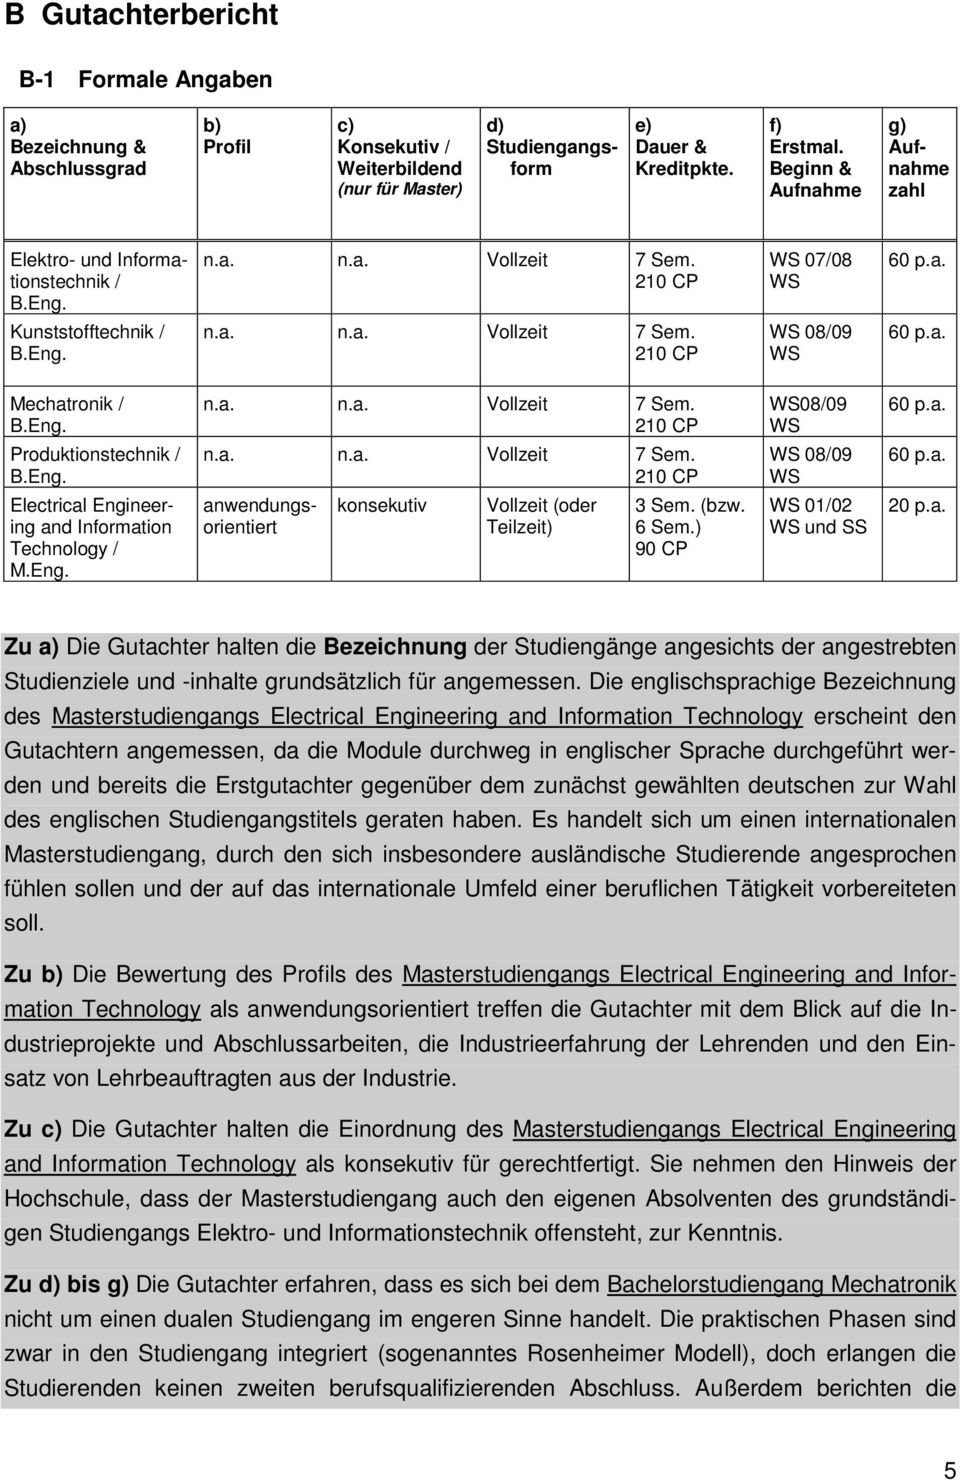 a. Mechatronik / B.Eng. n.a. n.a. Vollzeit 7 Sem. 210 CP WS08/09 WS 60 p.a. Produktionstechnik / B.Eng. n.a. n.a. Vollzeit 7 Sem. 210 CP WS 08/09 WS 60 p.a. Electrical Engineering and Information Technology / M.